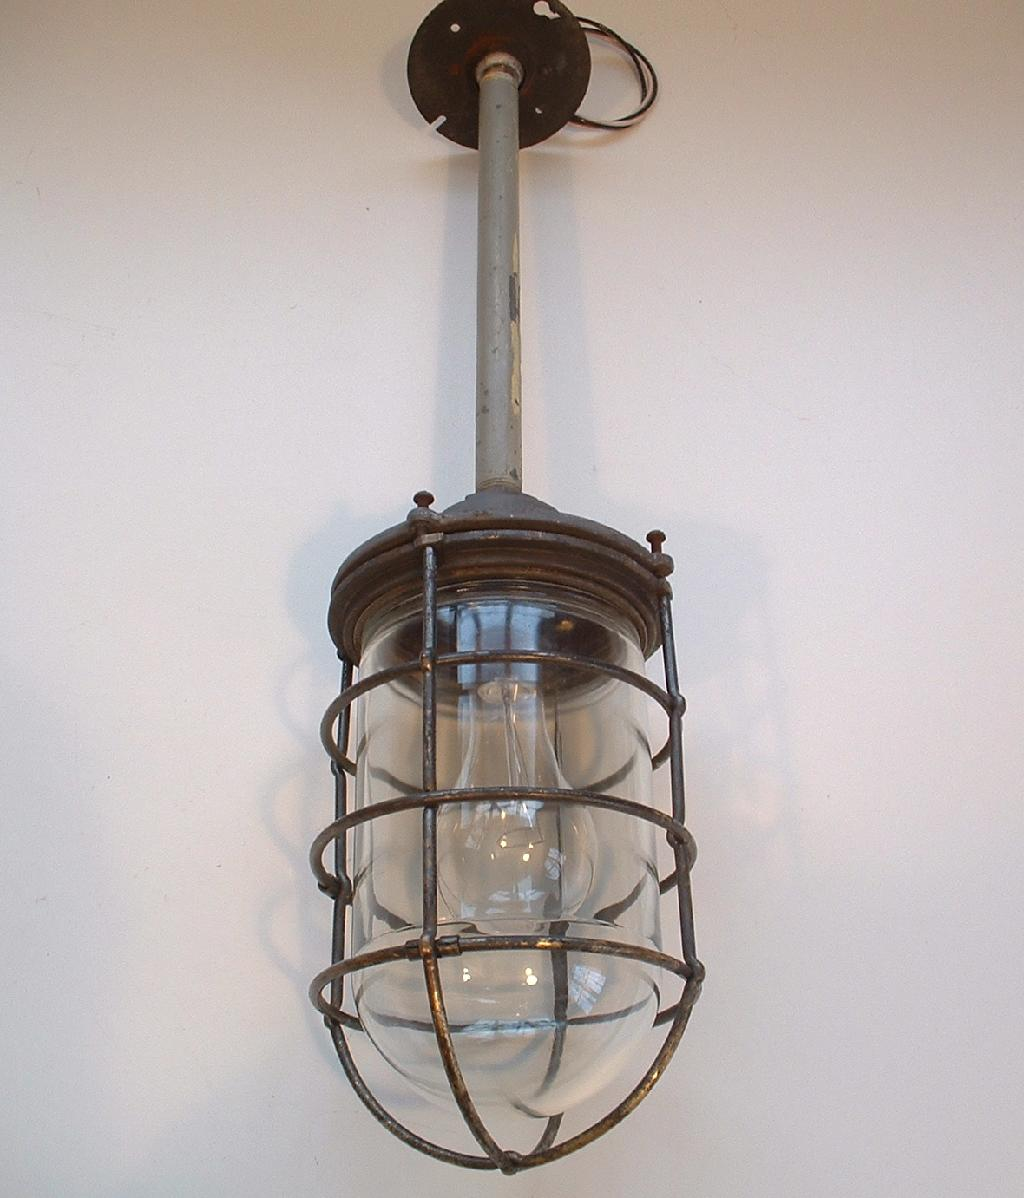 Vtg 1940s explosion proof russell stoll brass industrial light very very old and unusual industrial brass caged pendant light the body of the light is steel or iron the cage is brass aloadofball Choice Image